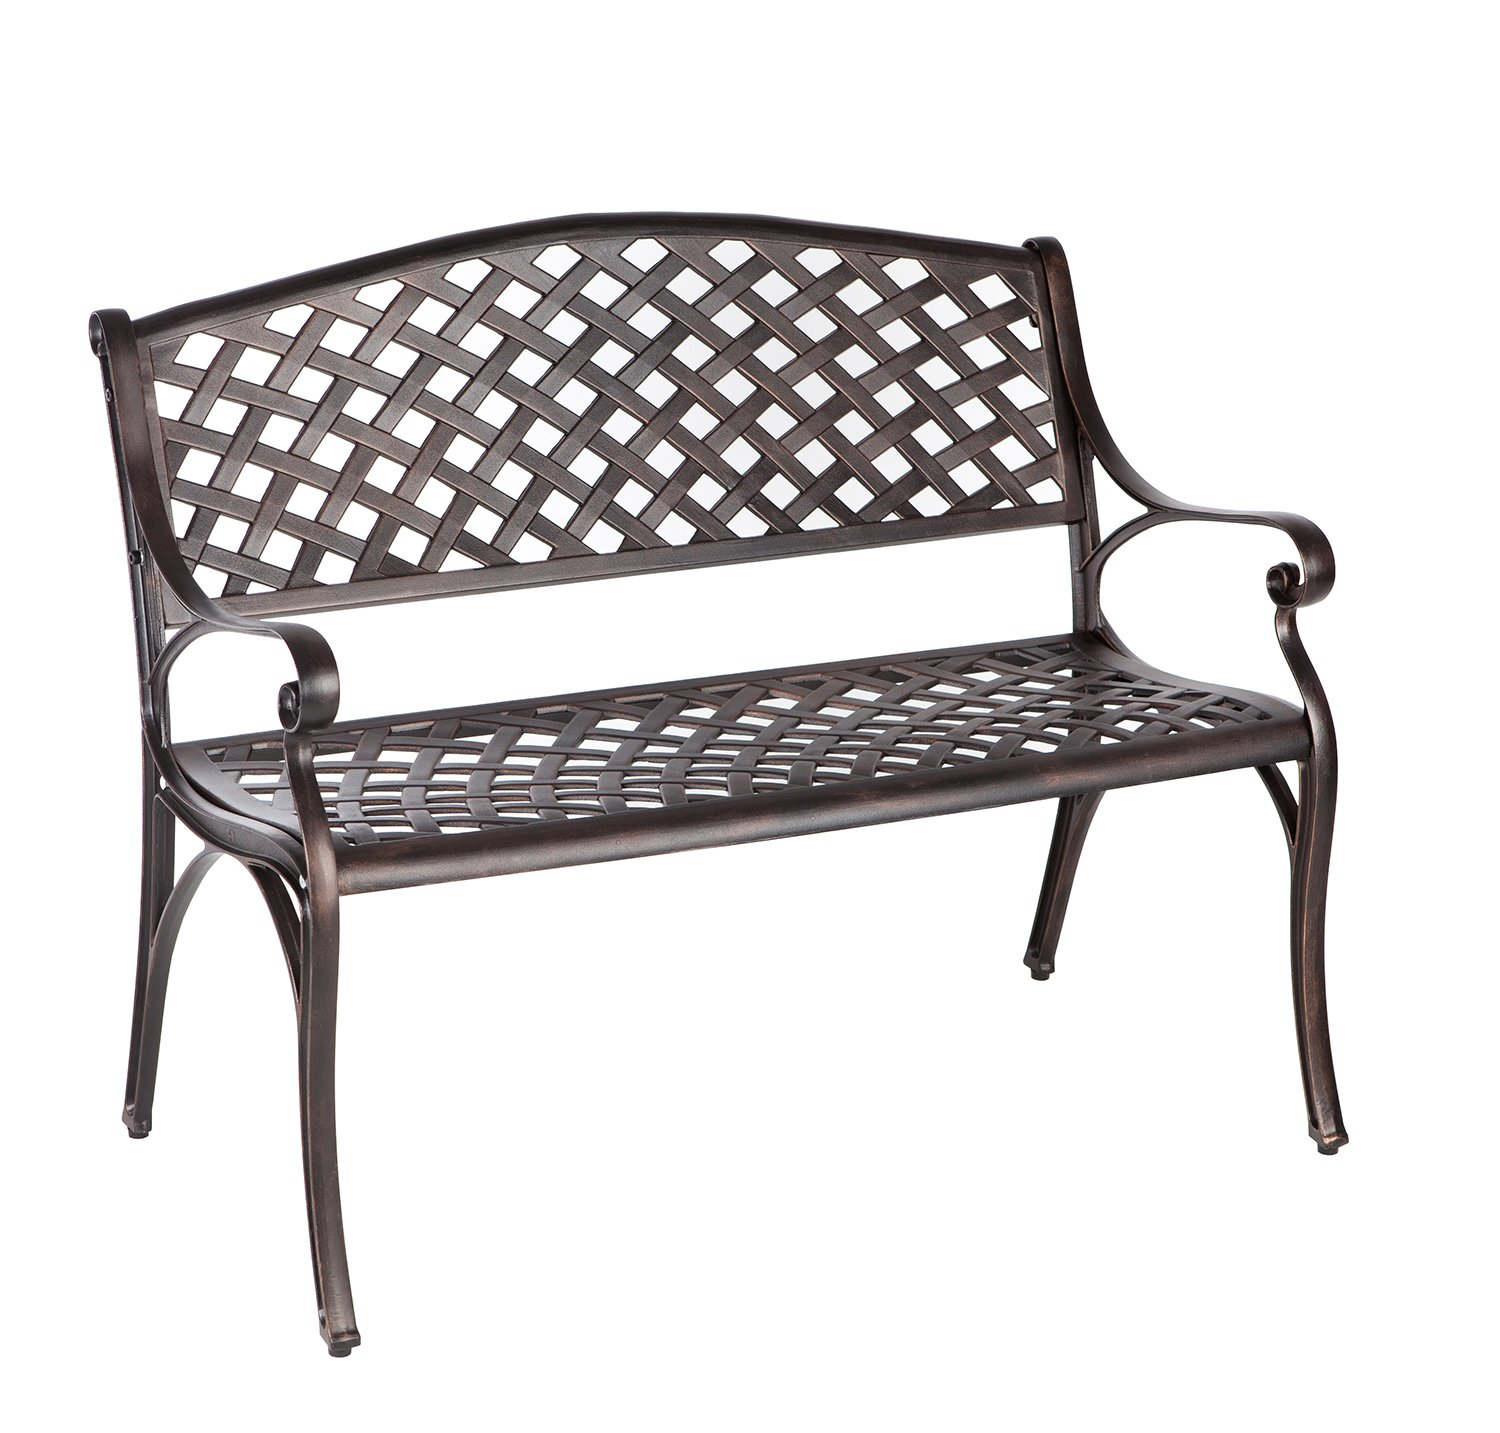 Patioflare PF-BB263 Die Cast Aluminum Bench, Antique Bronze Finish